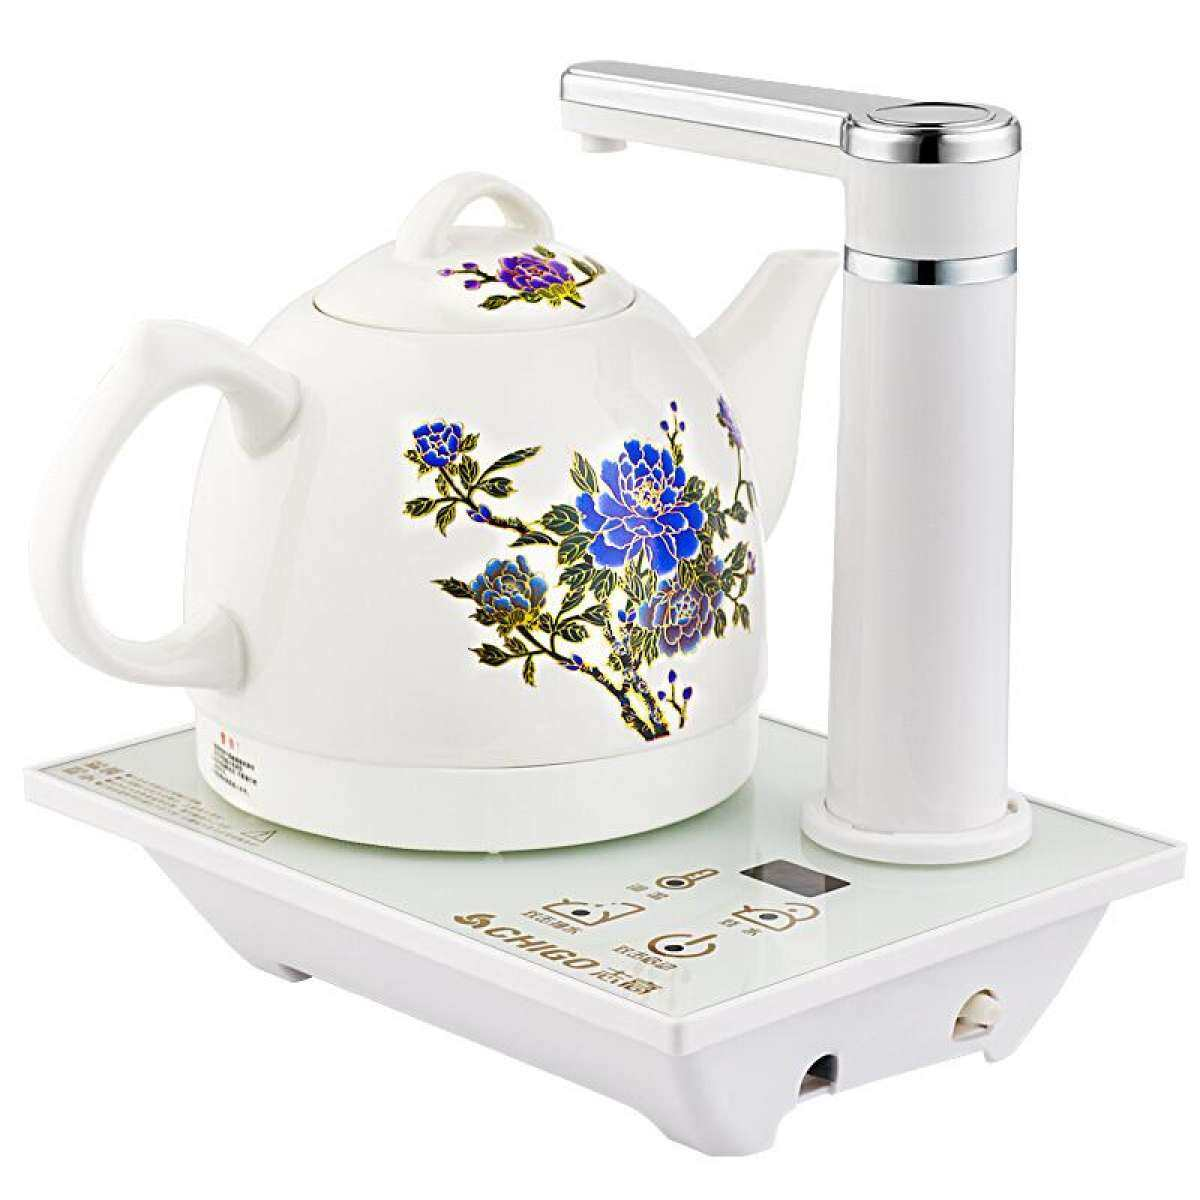 CHIGO D2 Automatic Water Heating Kettle, Ceramic Color Automatic Water Heating Kettle (White)